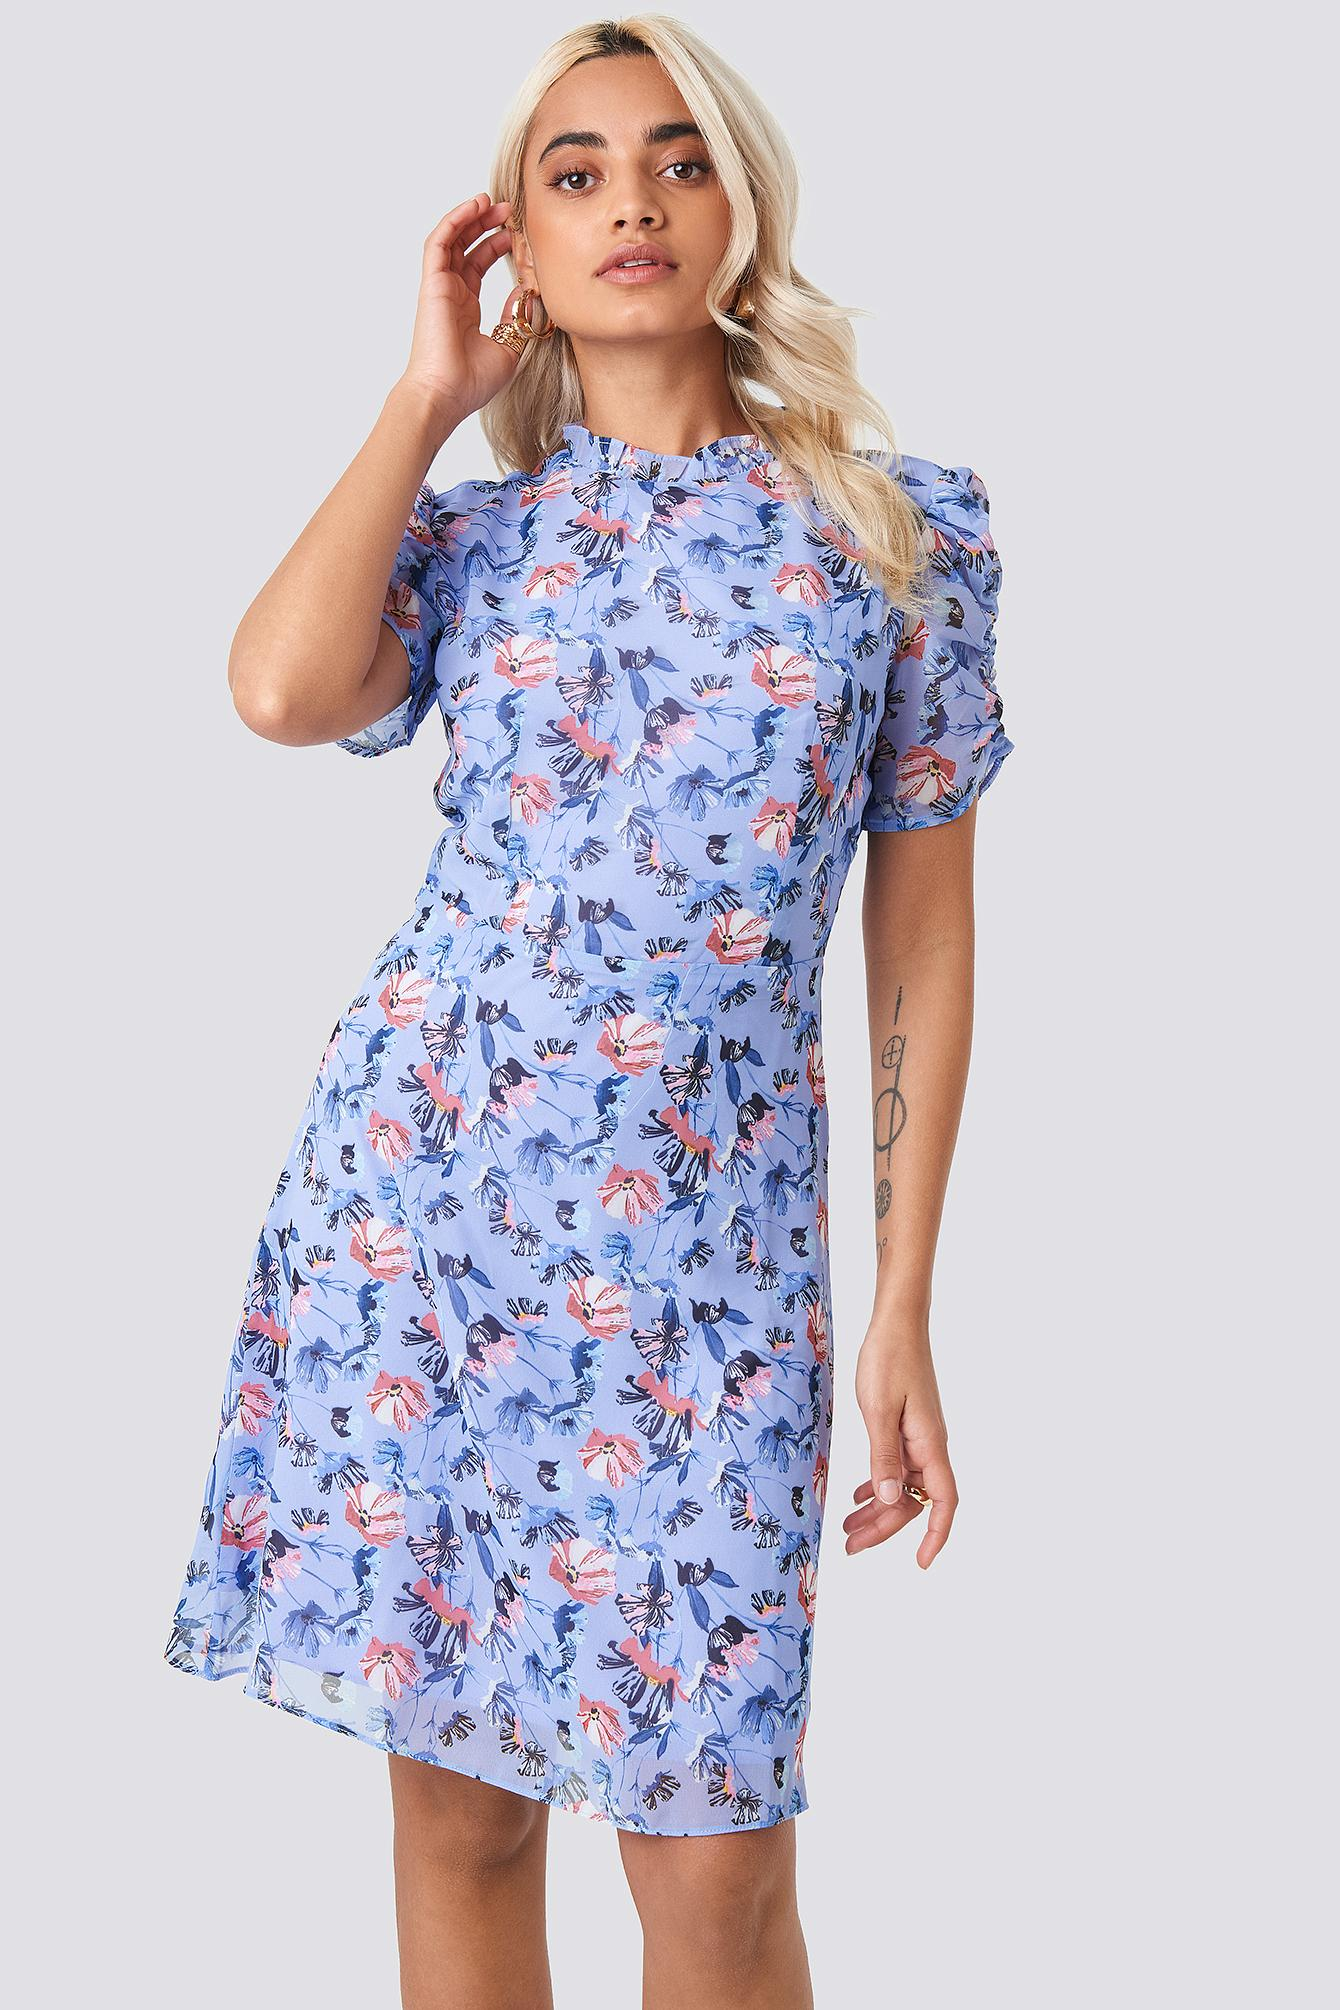 2caad724226 Trendyol Carmen Floral Patterned Dress Multicolor in Blue - Lyst